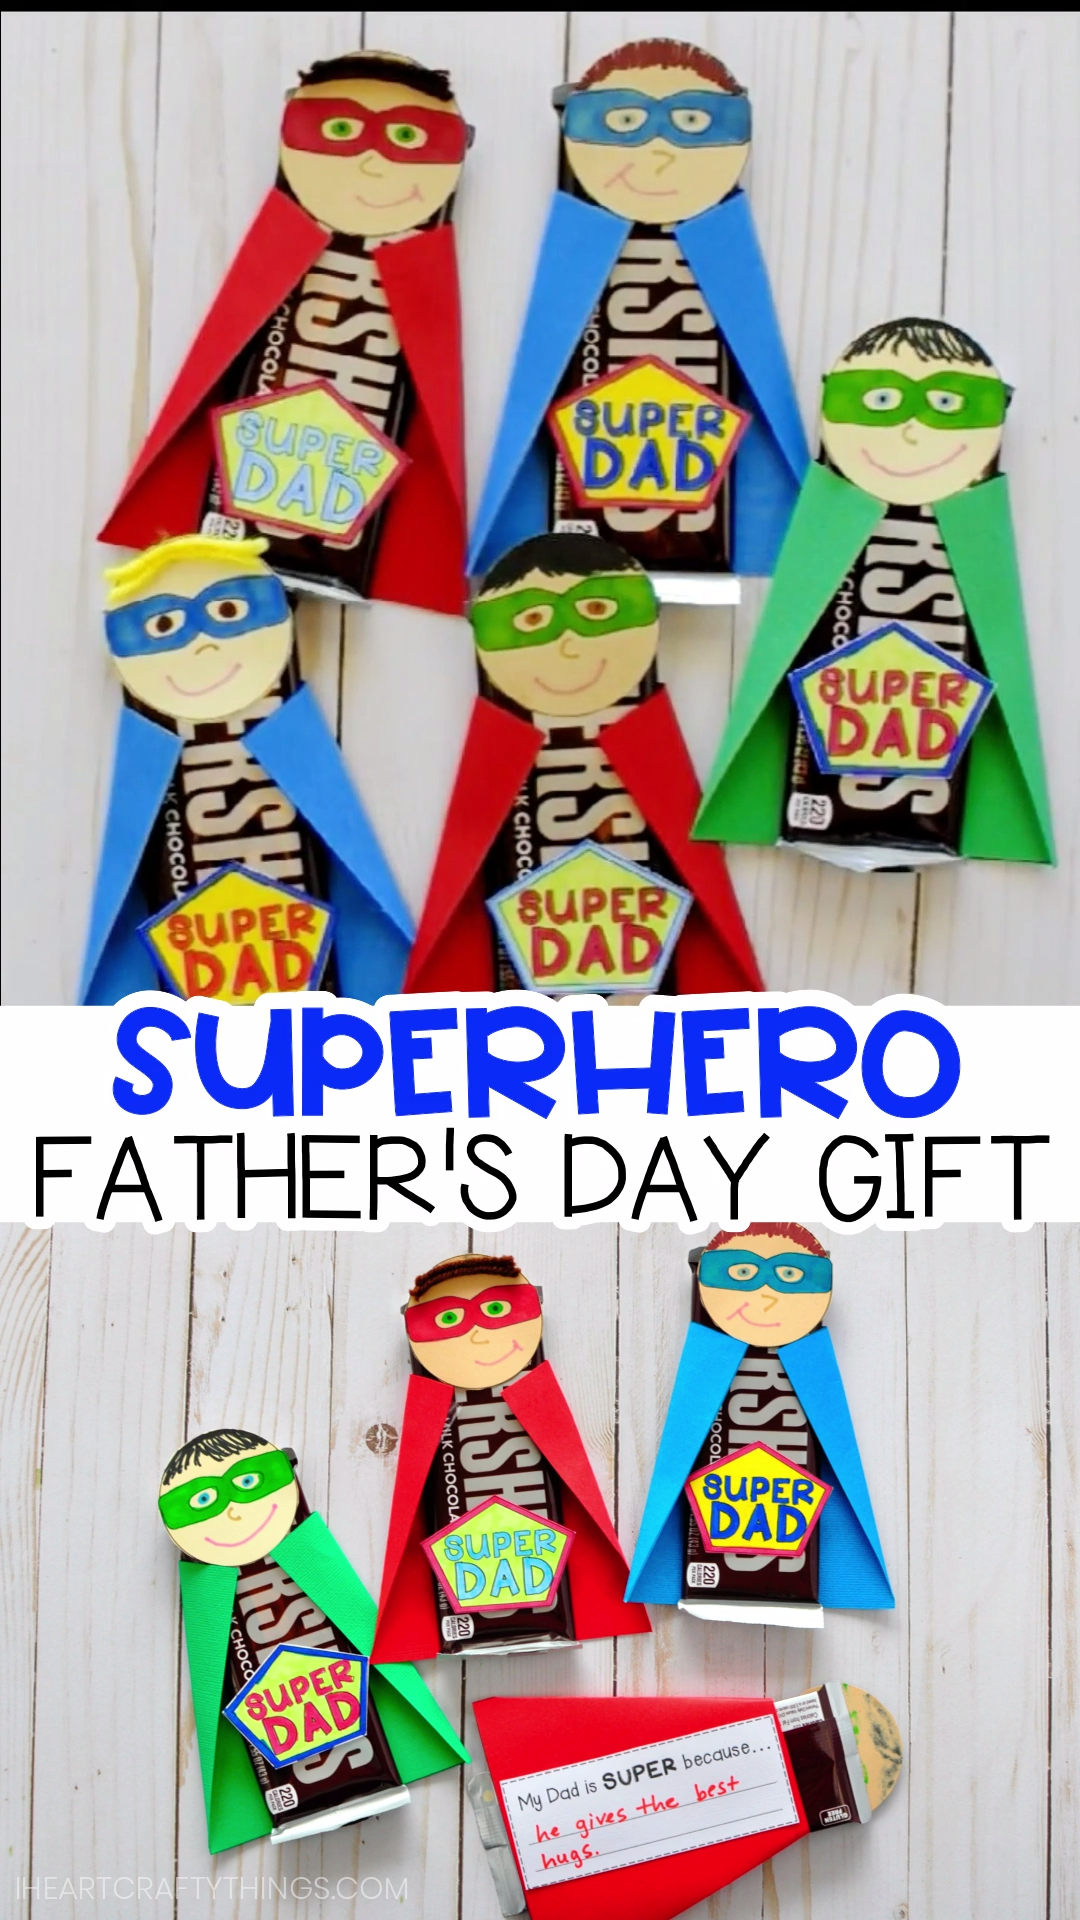 How to Make a Superhero Father's Day Gift #superherocrafts